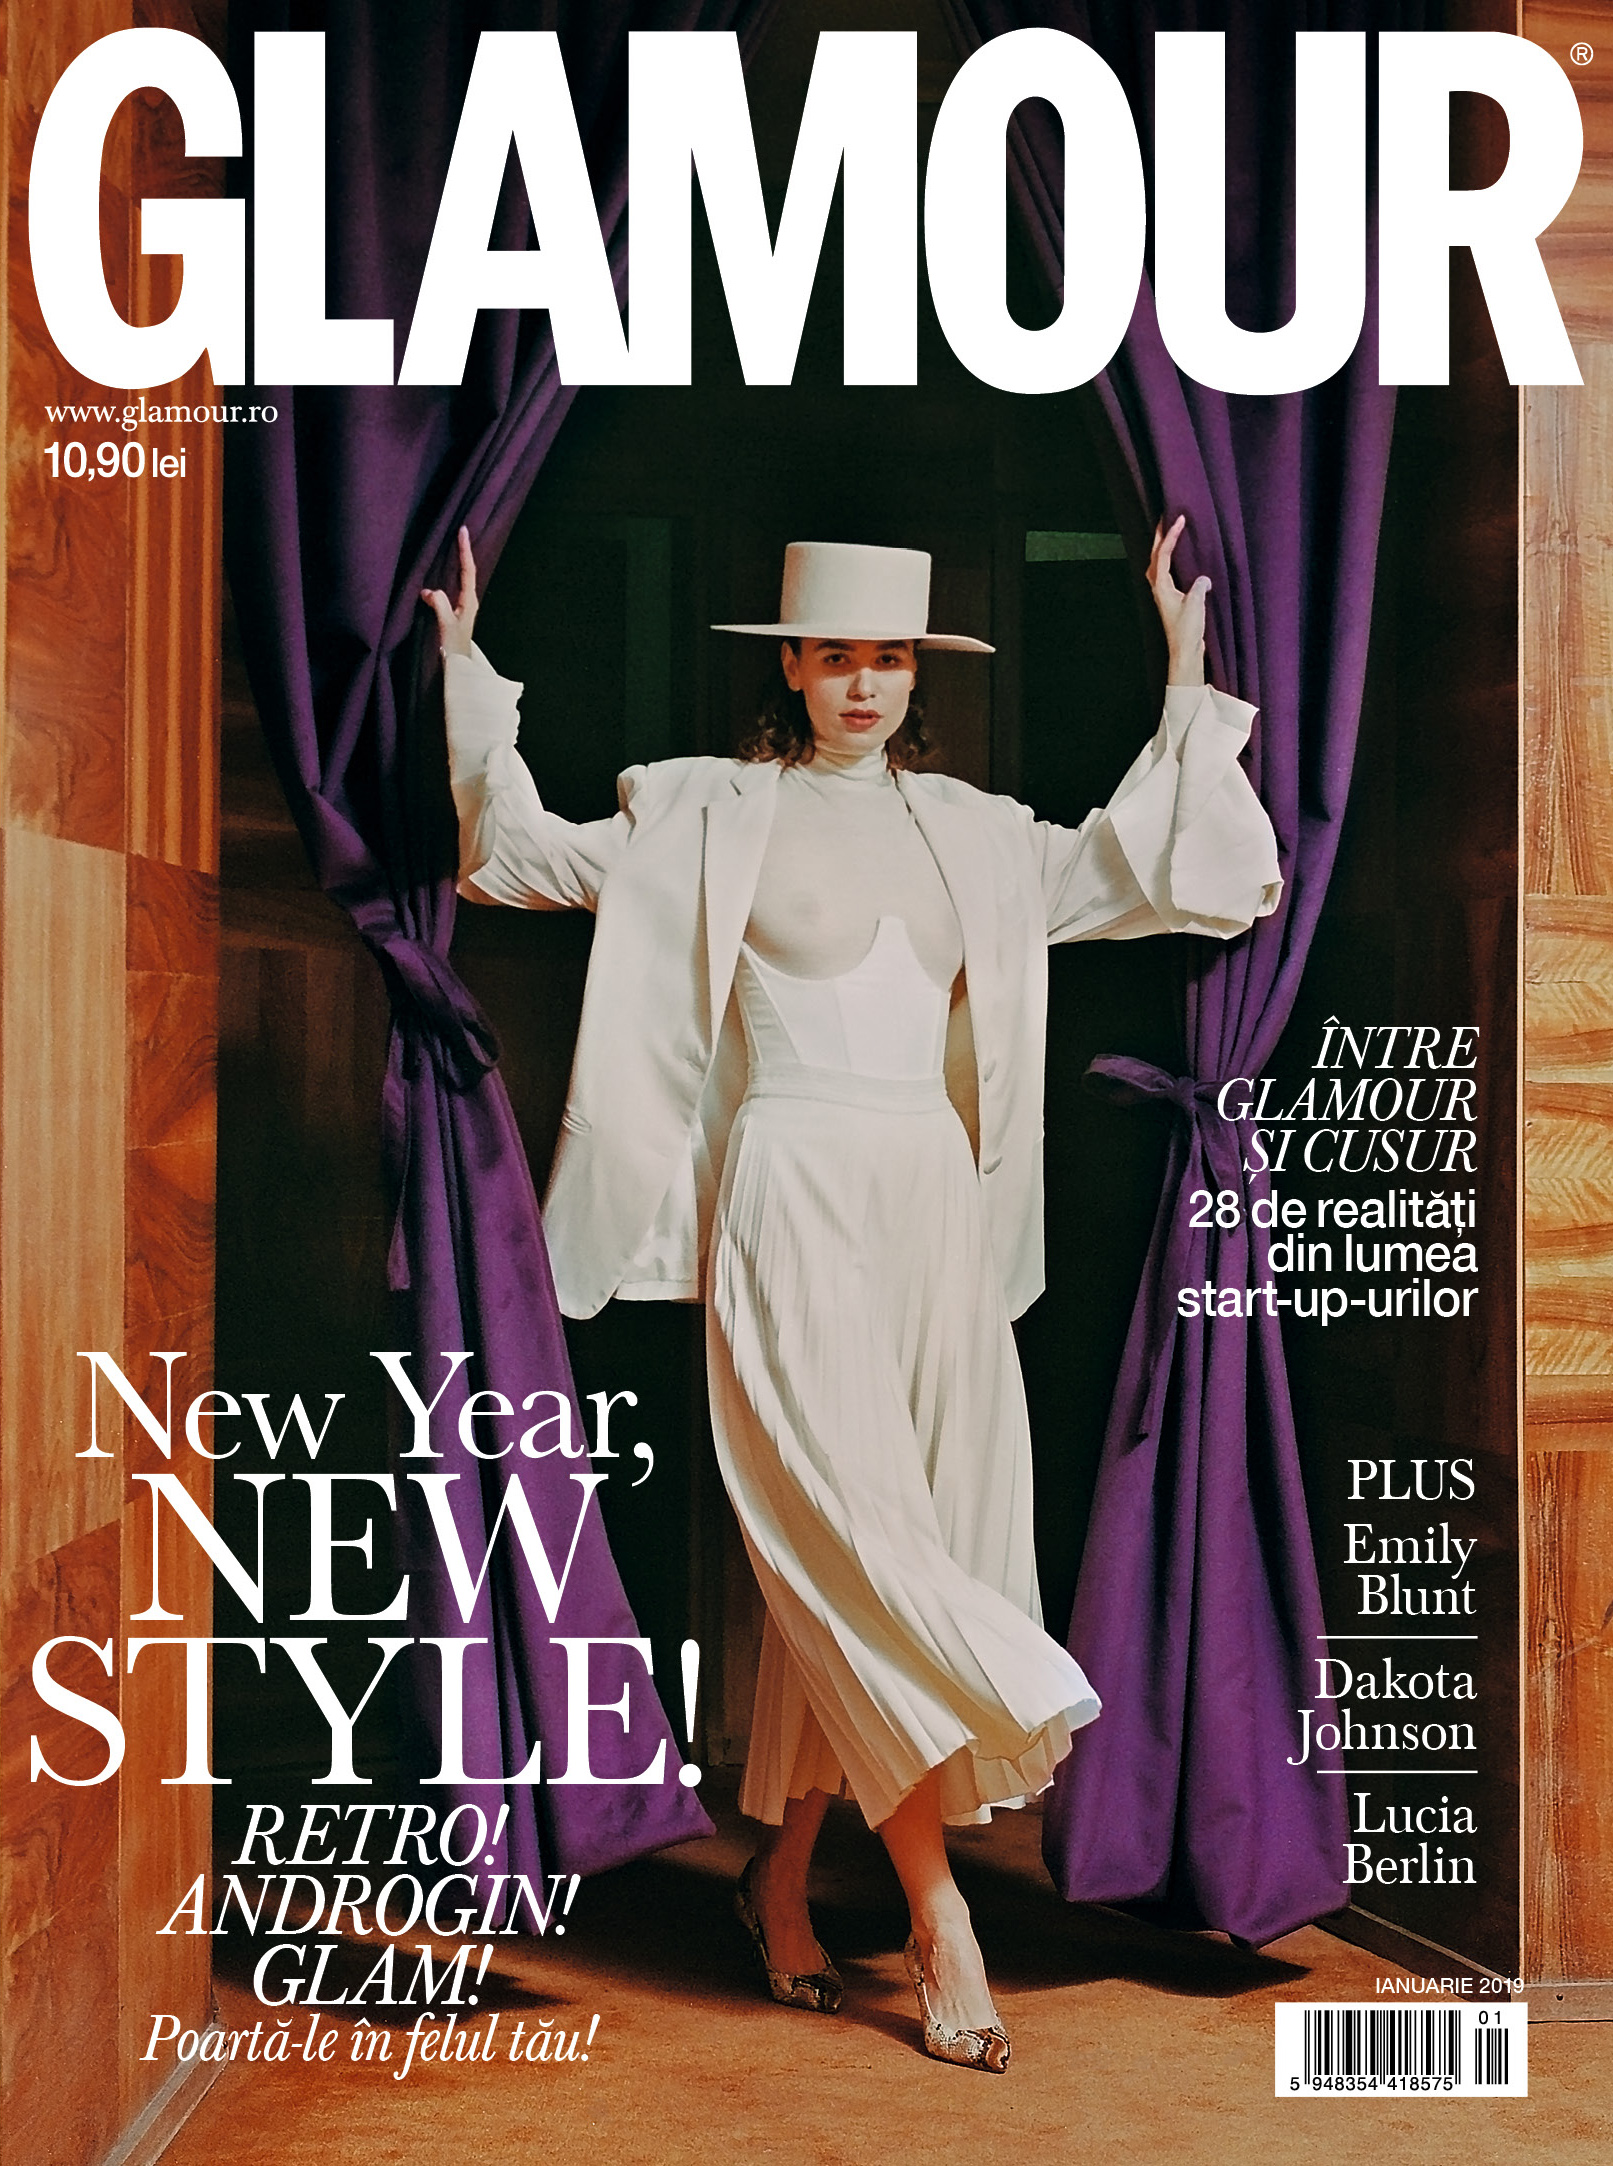 New Year, New Style: GLAMOUR de ianuarie